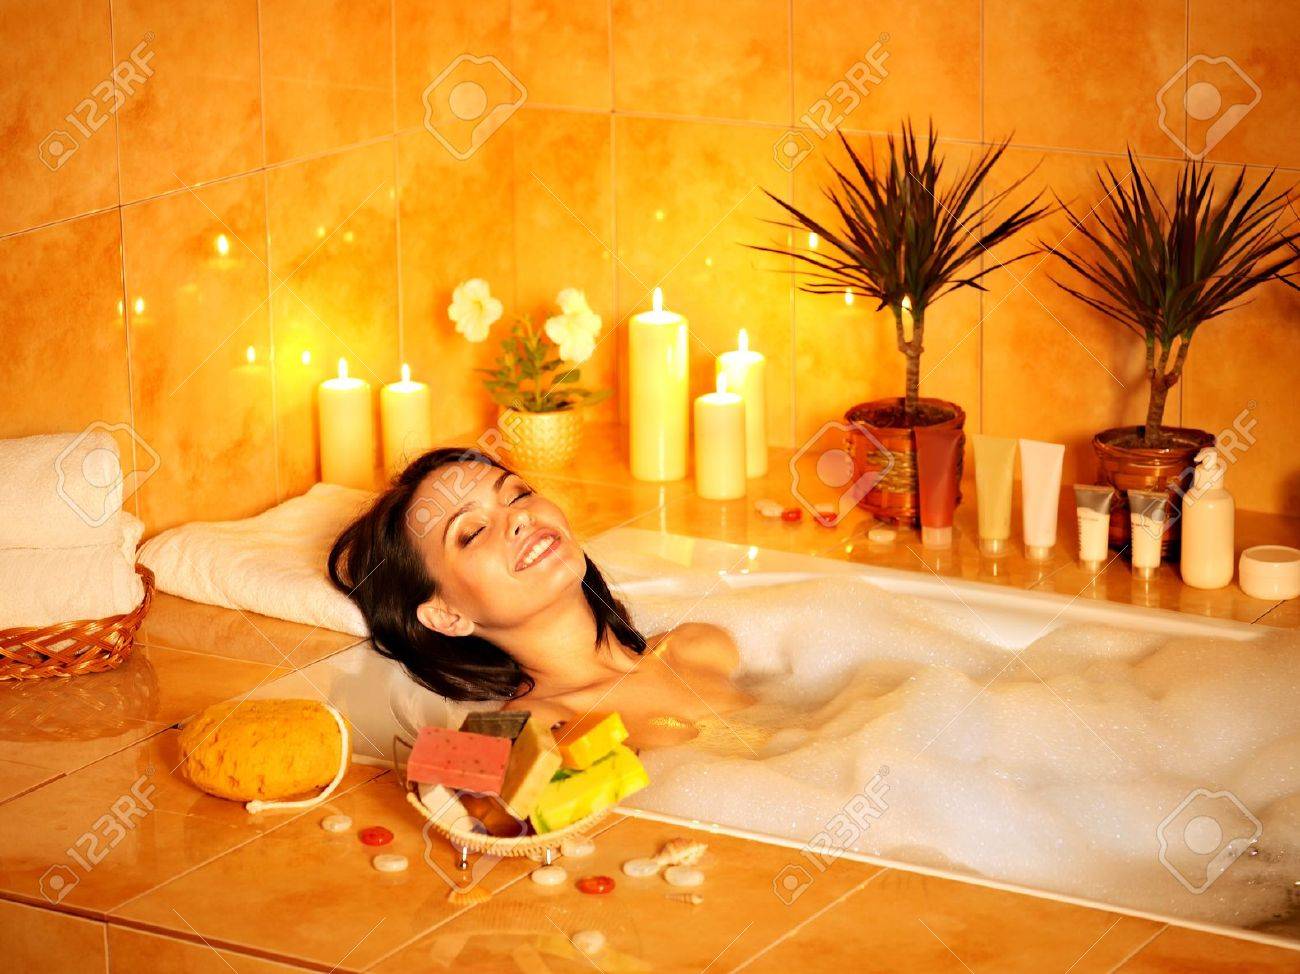 Young Woman Take Bubble Bath. Stock Photo, Picture And Royalty Free ...